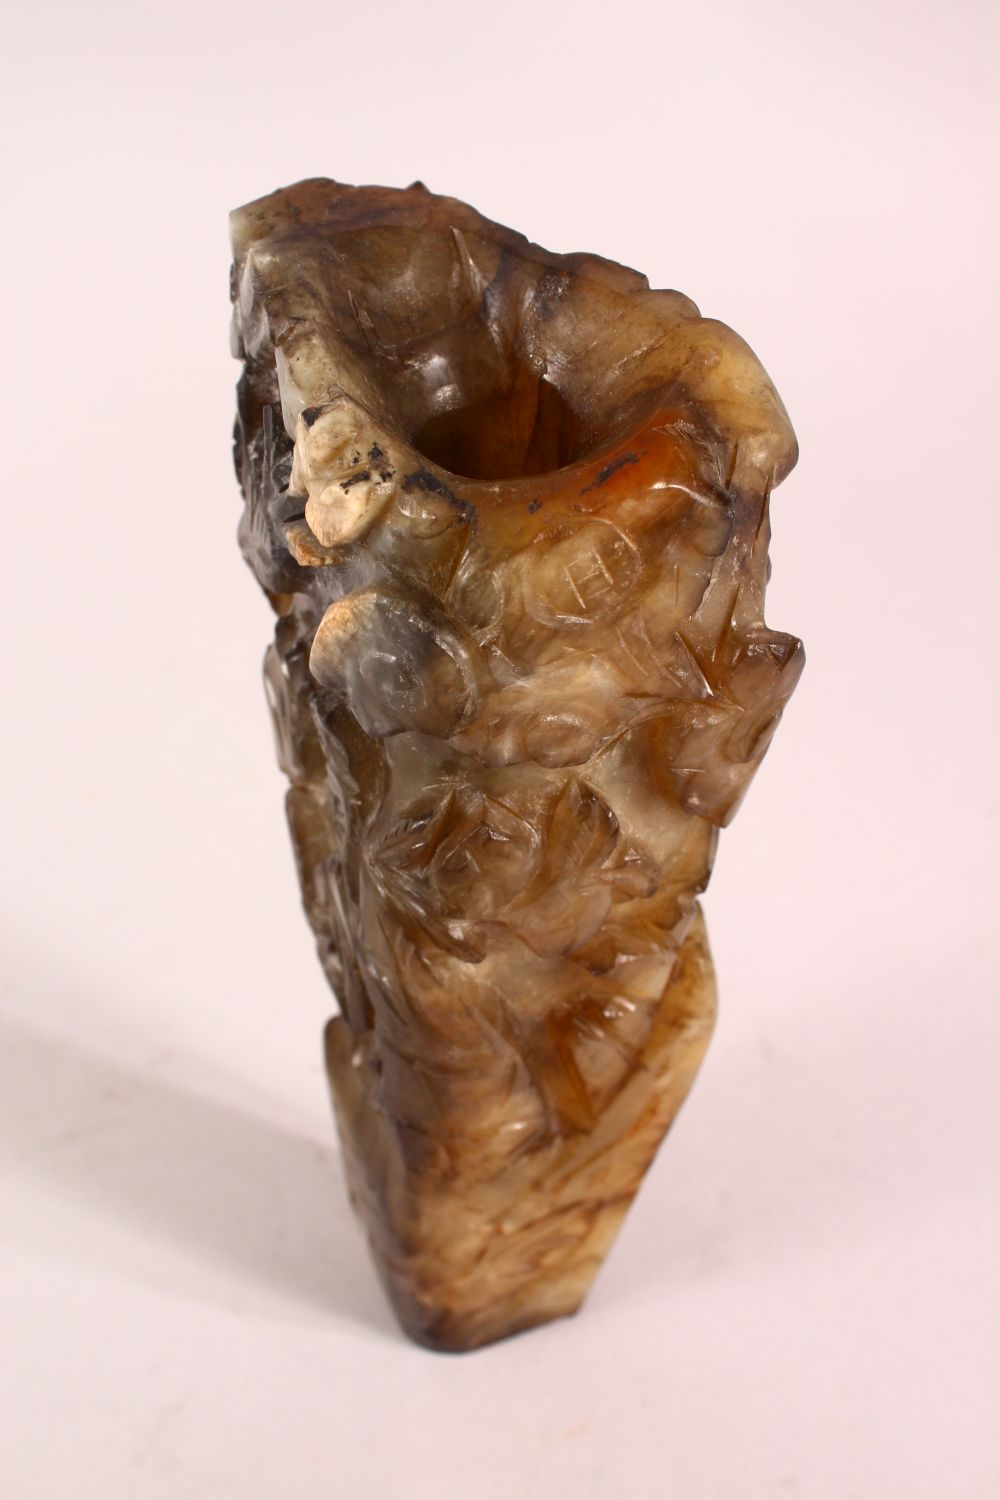 A CHINESE CARVED JADE VASE, carved with figures and foliage, 20.5cm - Image 7 of 8